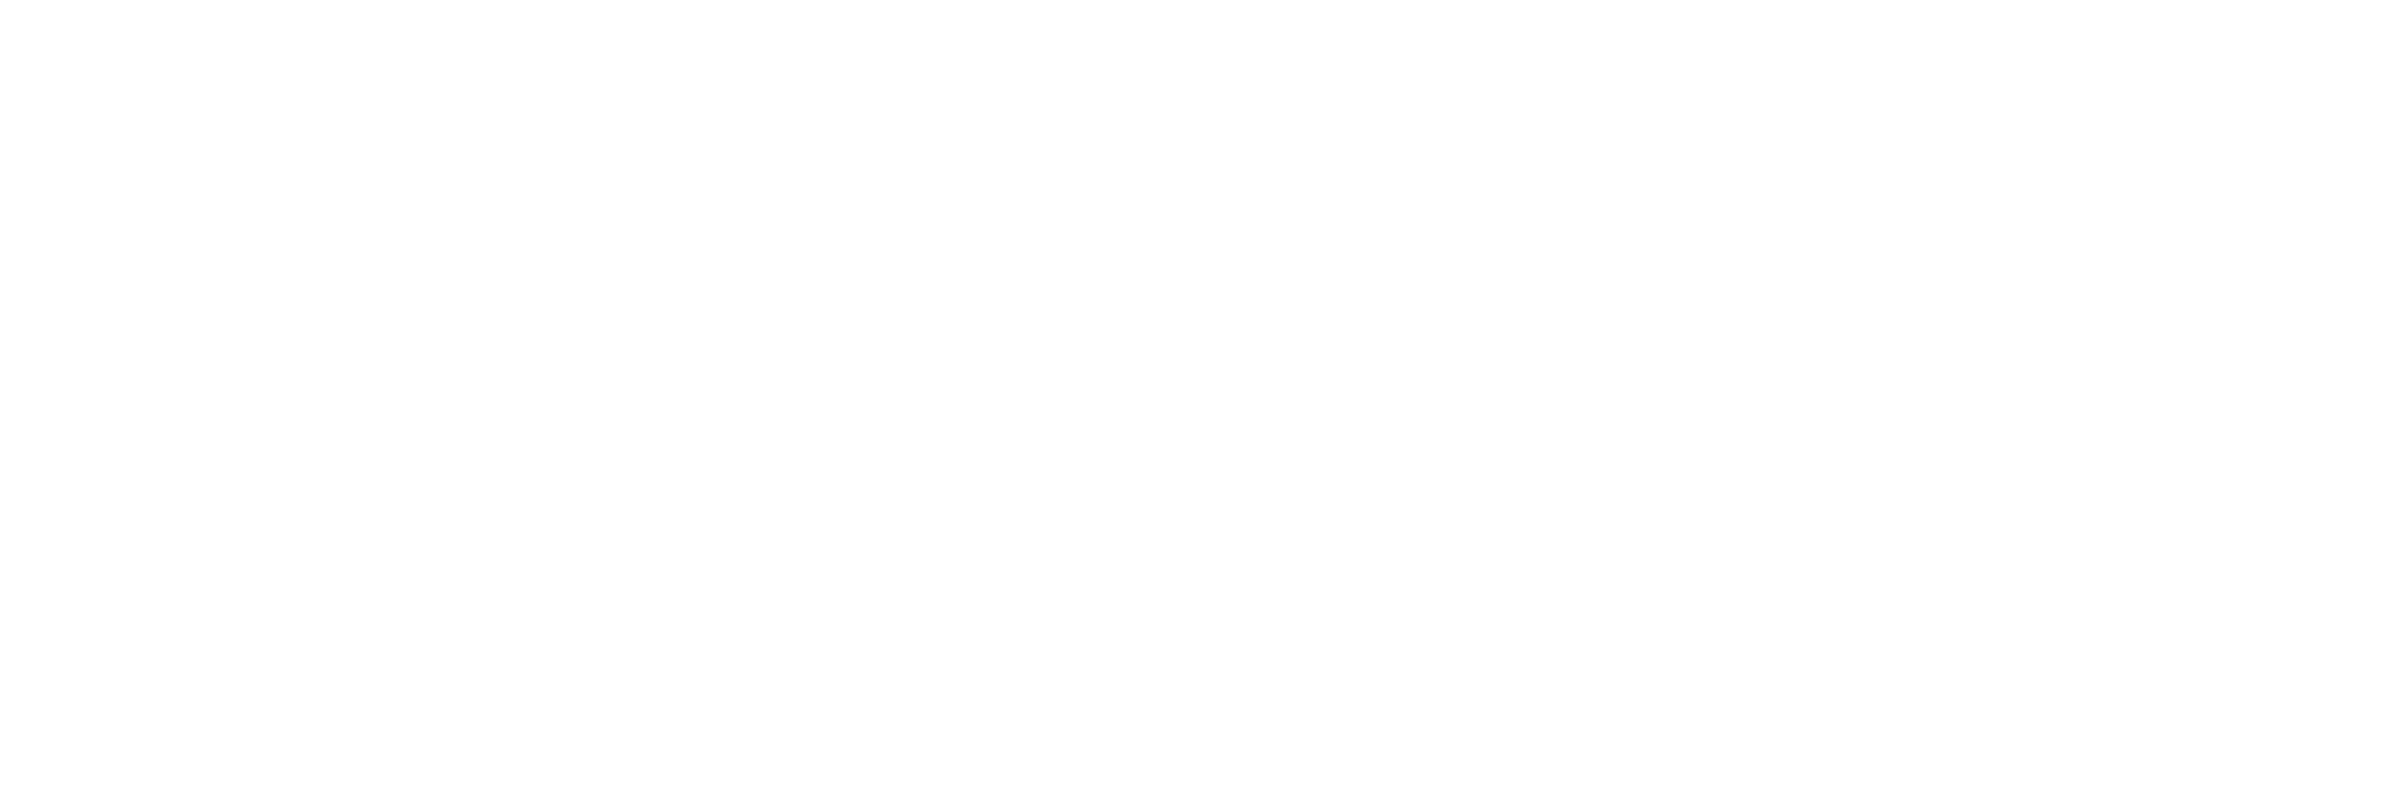 Mike Horne Massage Therapy